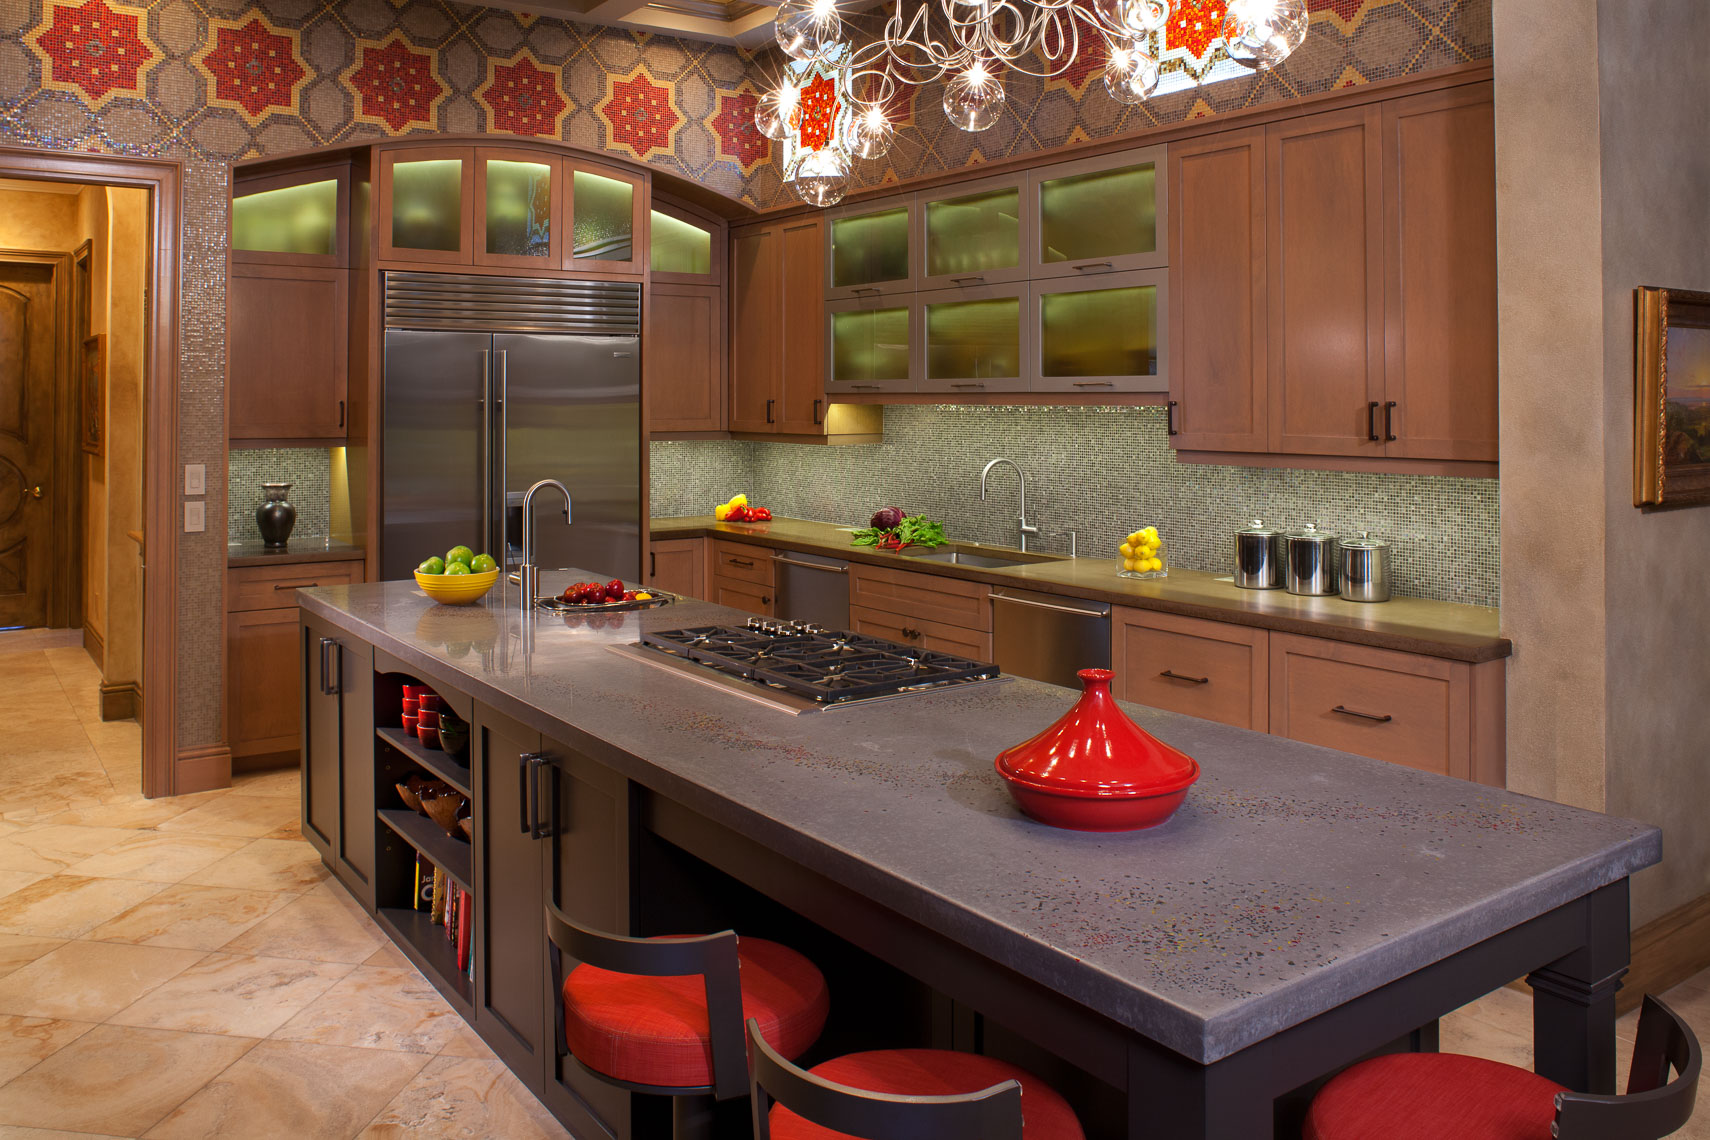 Contemporary Kitchen - Mark Borosch Photography - Siesta Key, FL